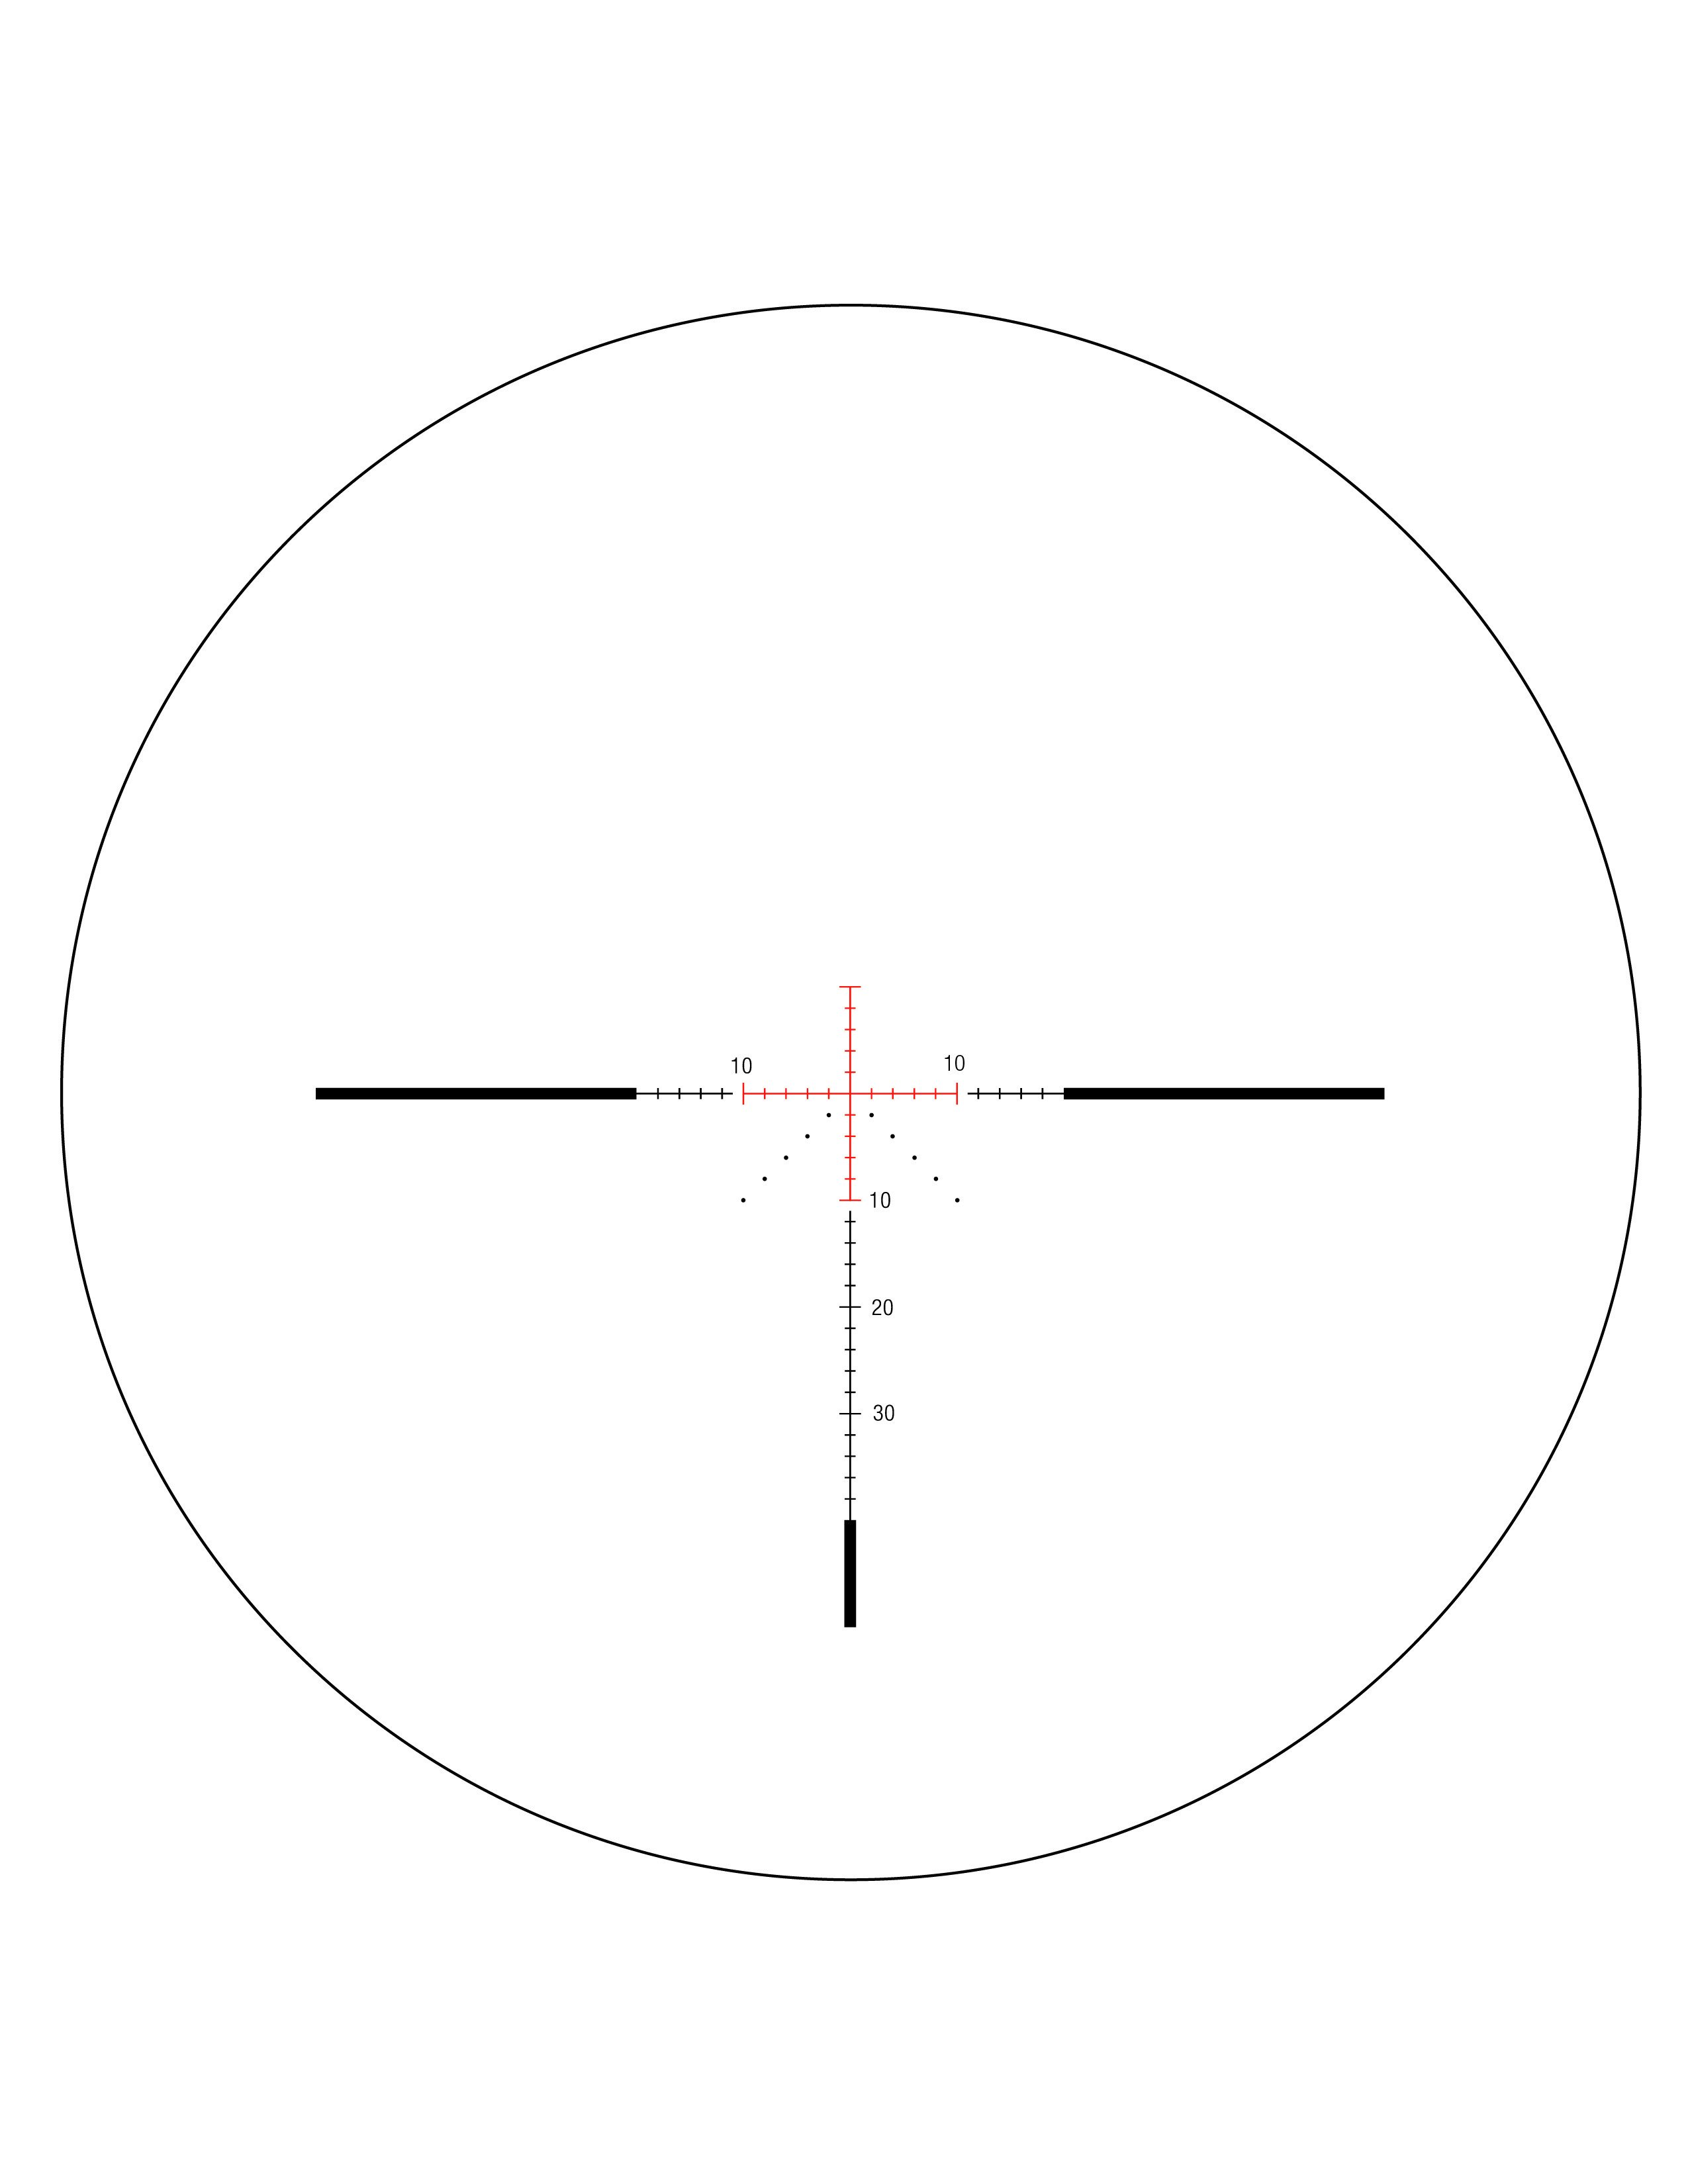 Trijicon AccuPower 3-9x40mm Rifle Scope - MOA Crosshair Reticle w/ Red LED  1 in  Tube